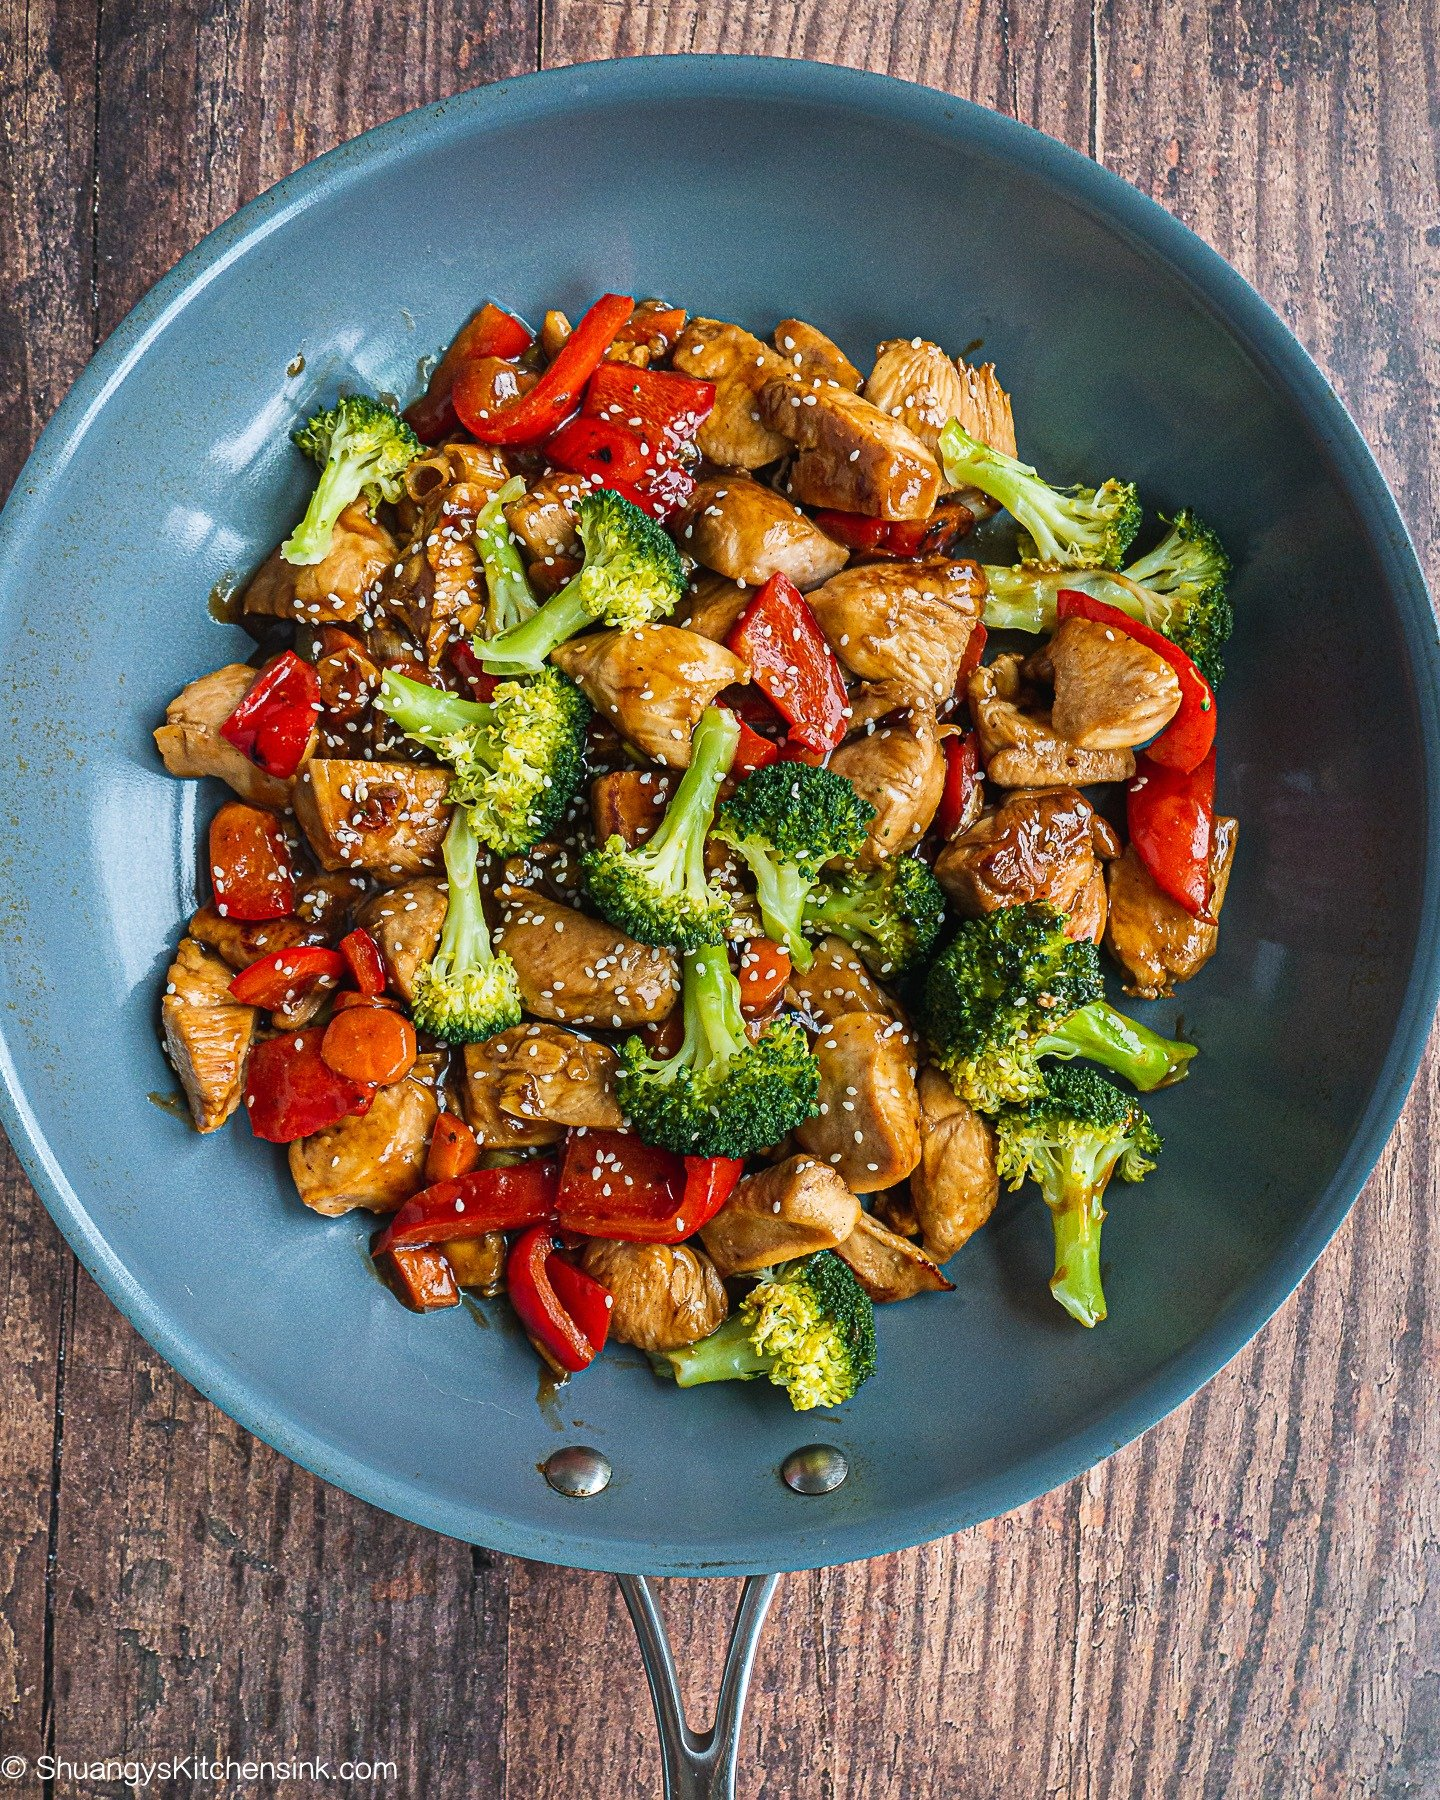 A pan of teriyaki chicken stir fry with broccoli and bell pepper.